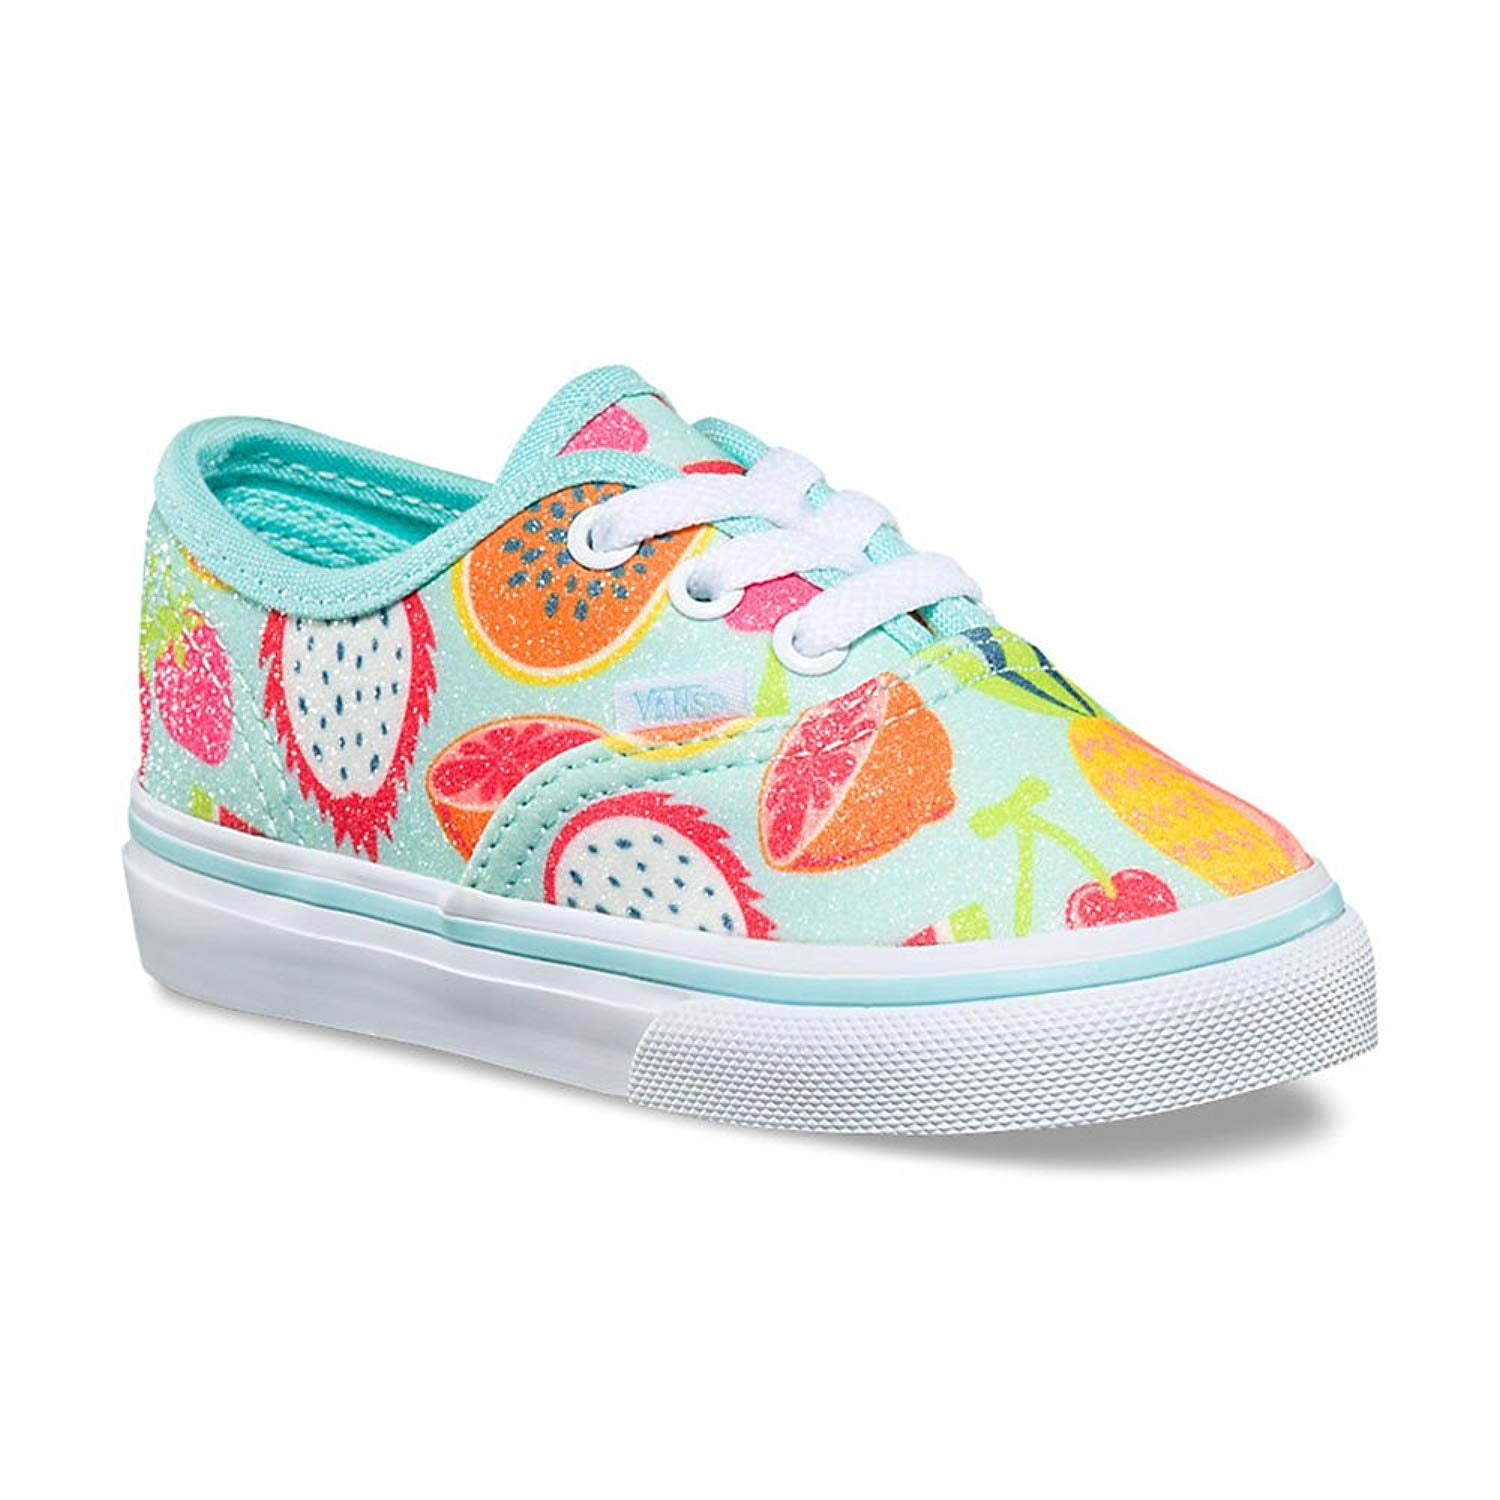 Vans Authentic Glitter Fruits Island Skate Shoes 8.5 Toddler